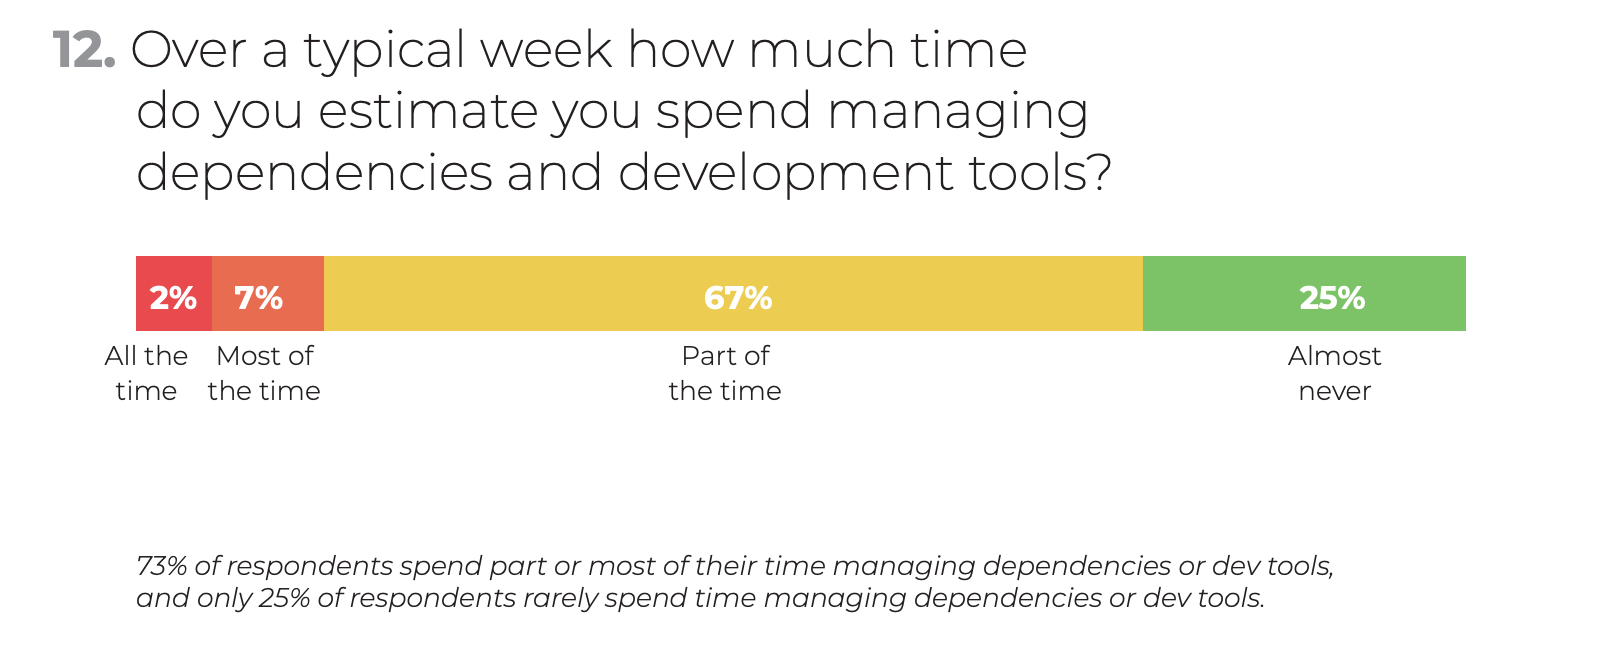 ActiveState's Developer Survey 2018: How much time do you spent on managing dependencies and development tools